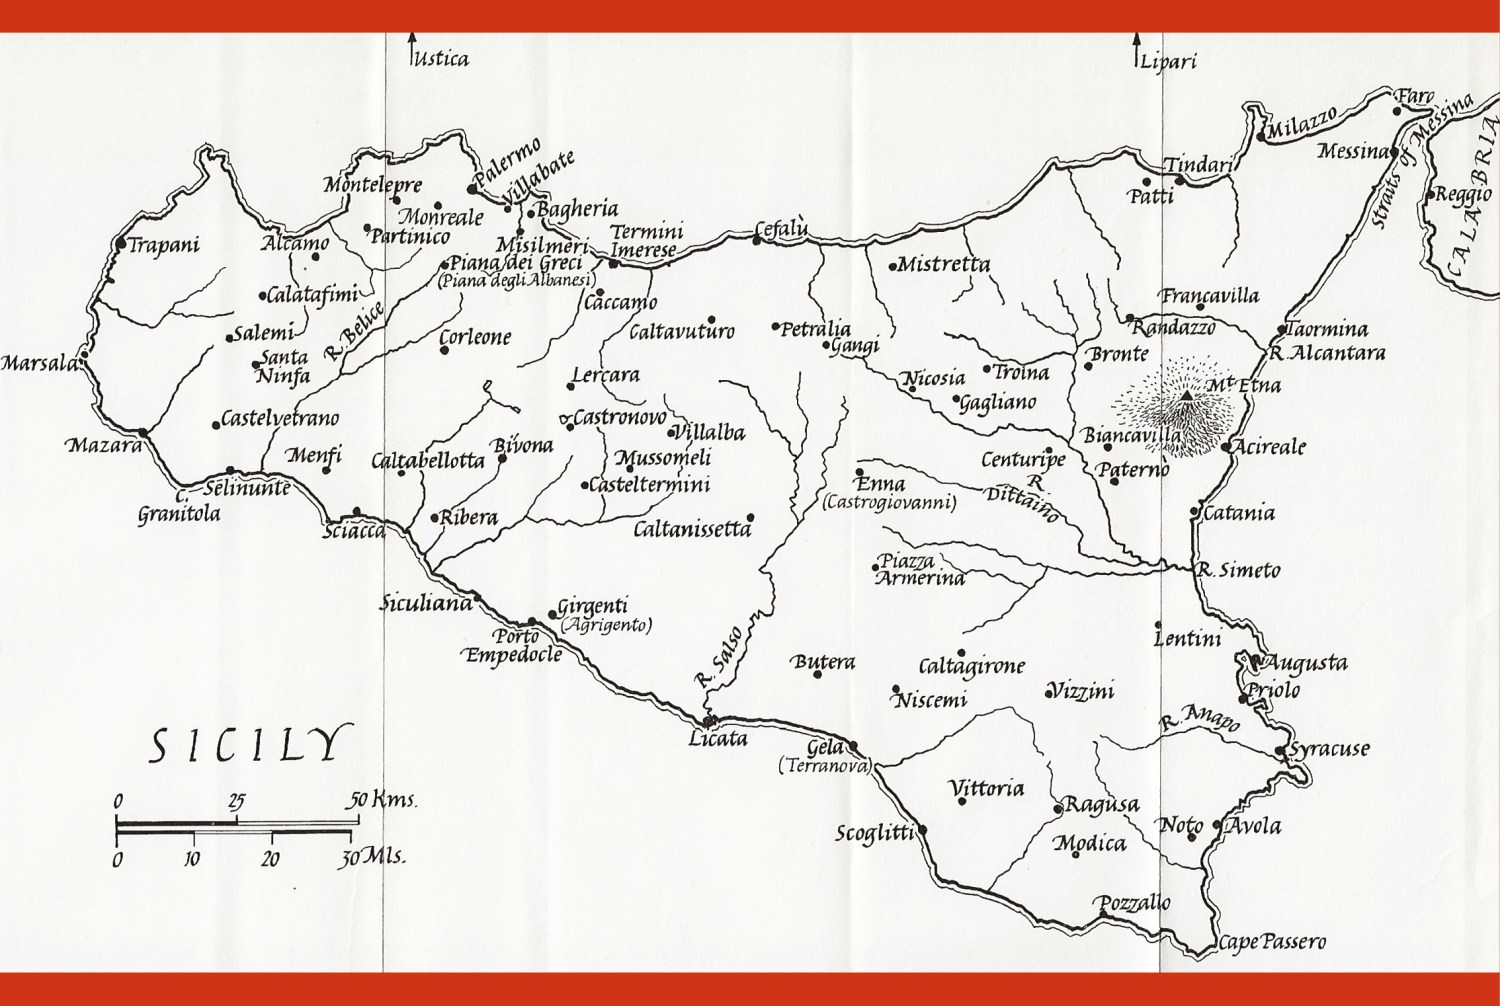 below Map of Sicily showing the major towns. The Battle of Cerami was fought close to Troina, which at the time lay on the border between Norman territory to the east and Arab territory to the west. Norman possession of the town protected the Norman supply-line back to southern Italy via the Straits of Messina, and provided a launch-pad for raids into Arab territory.